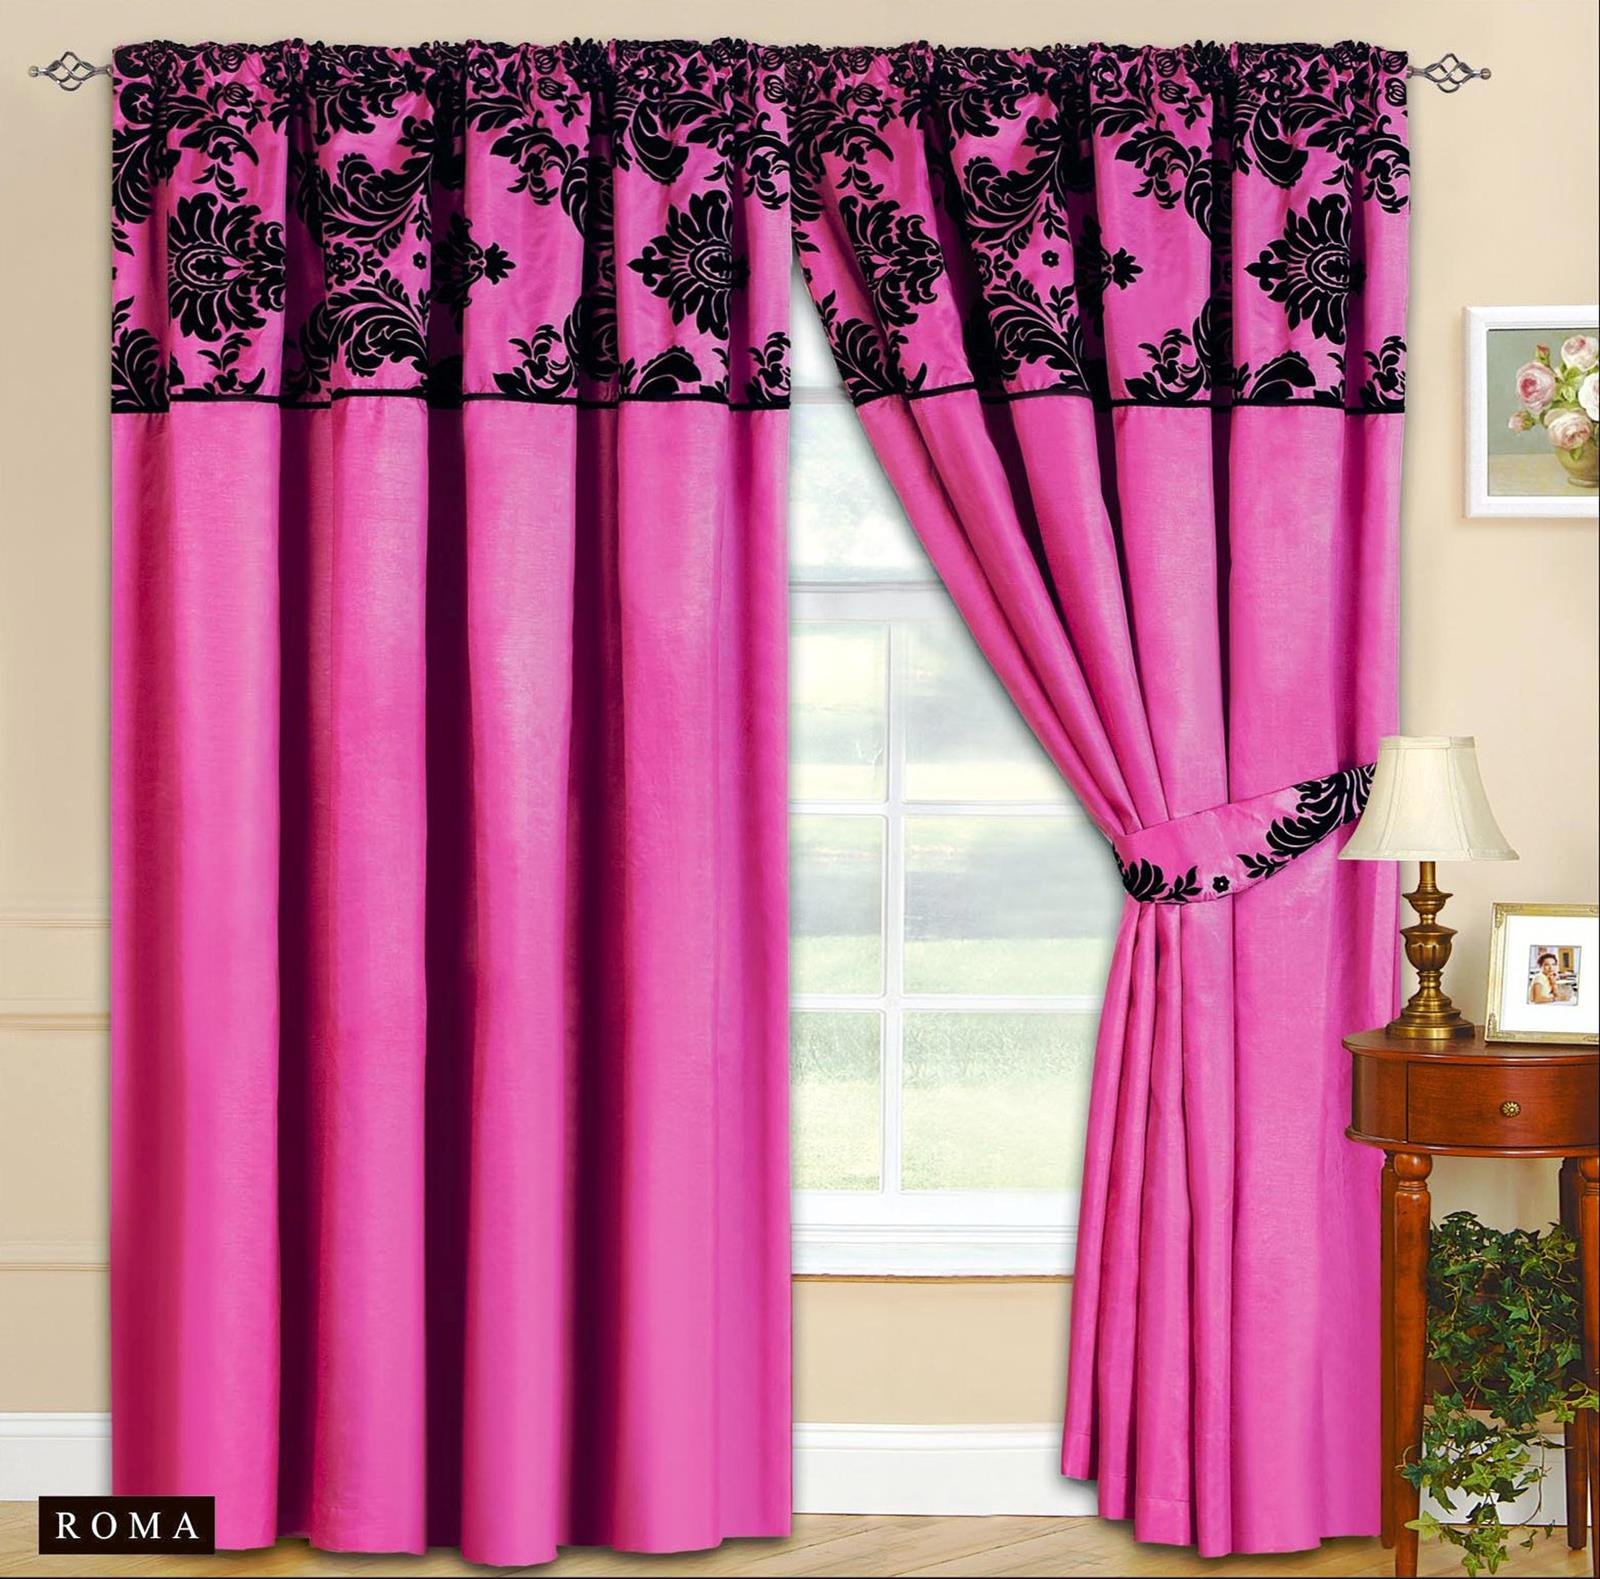 New Elegance Half Flock Ready Made Pencil Pleat Curtains With 2 Tie Backs 66